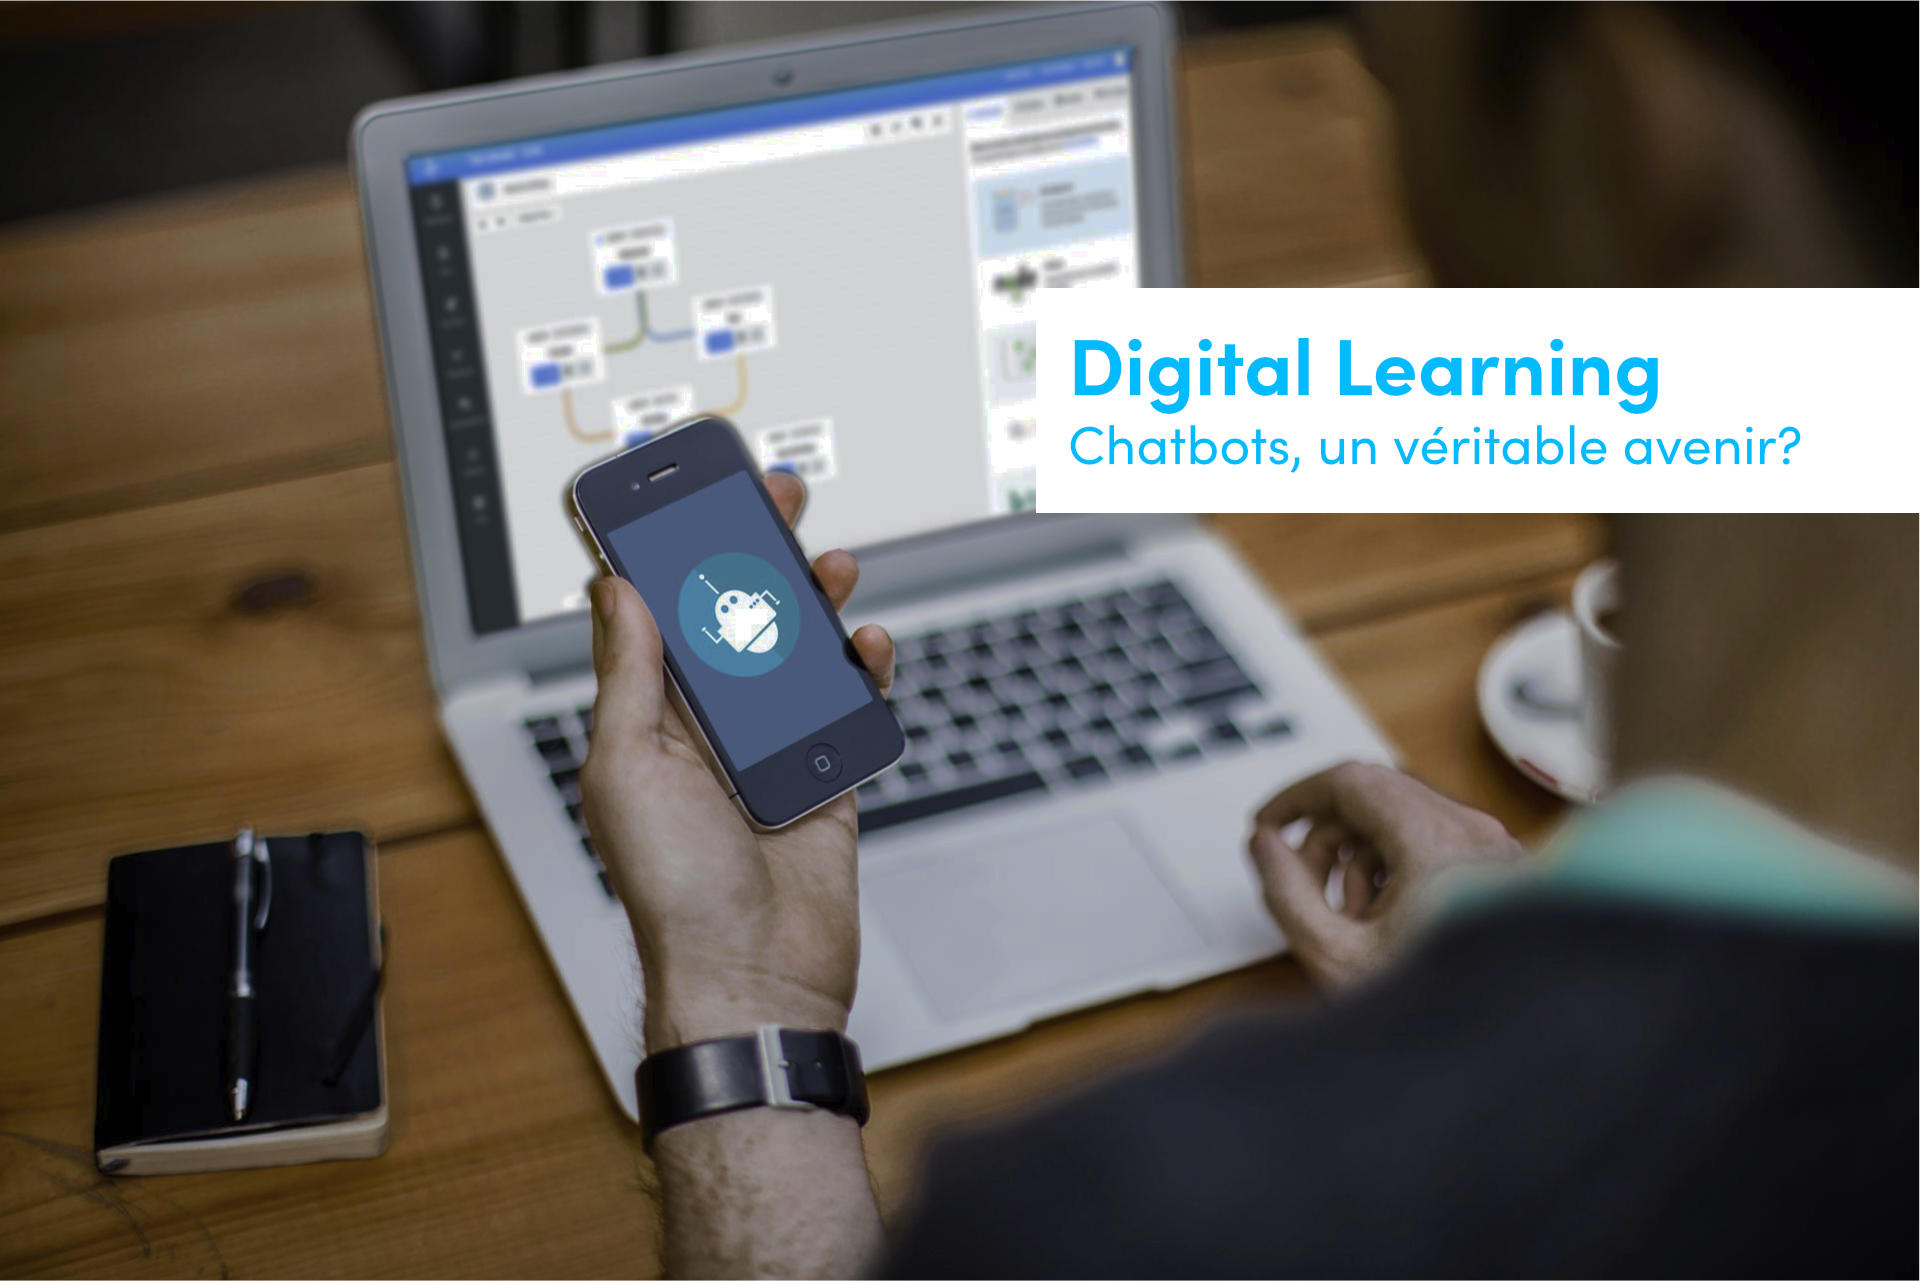 avenir de la formation entre chatbot et digital learning